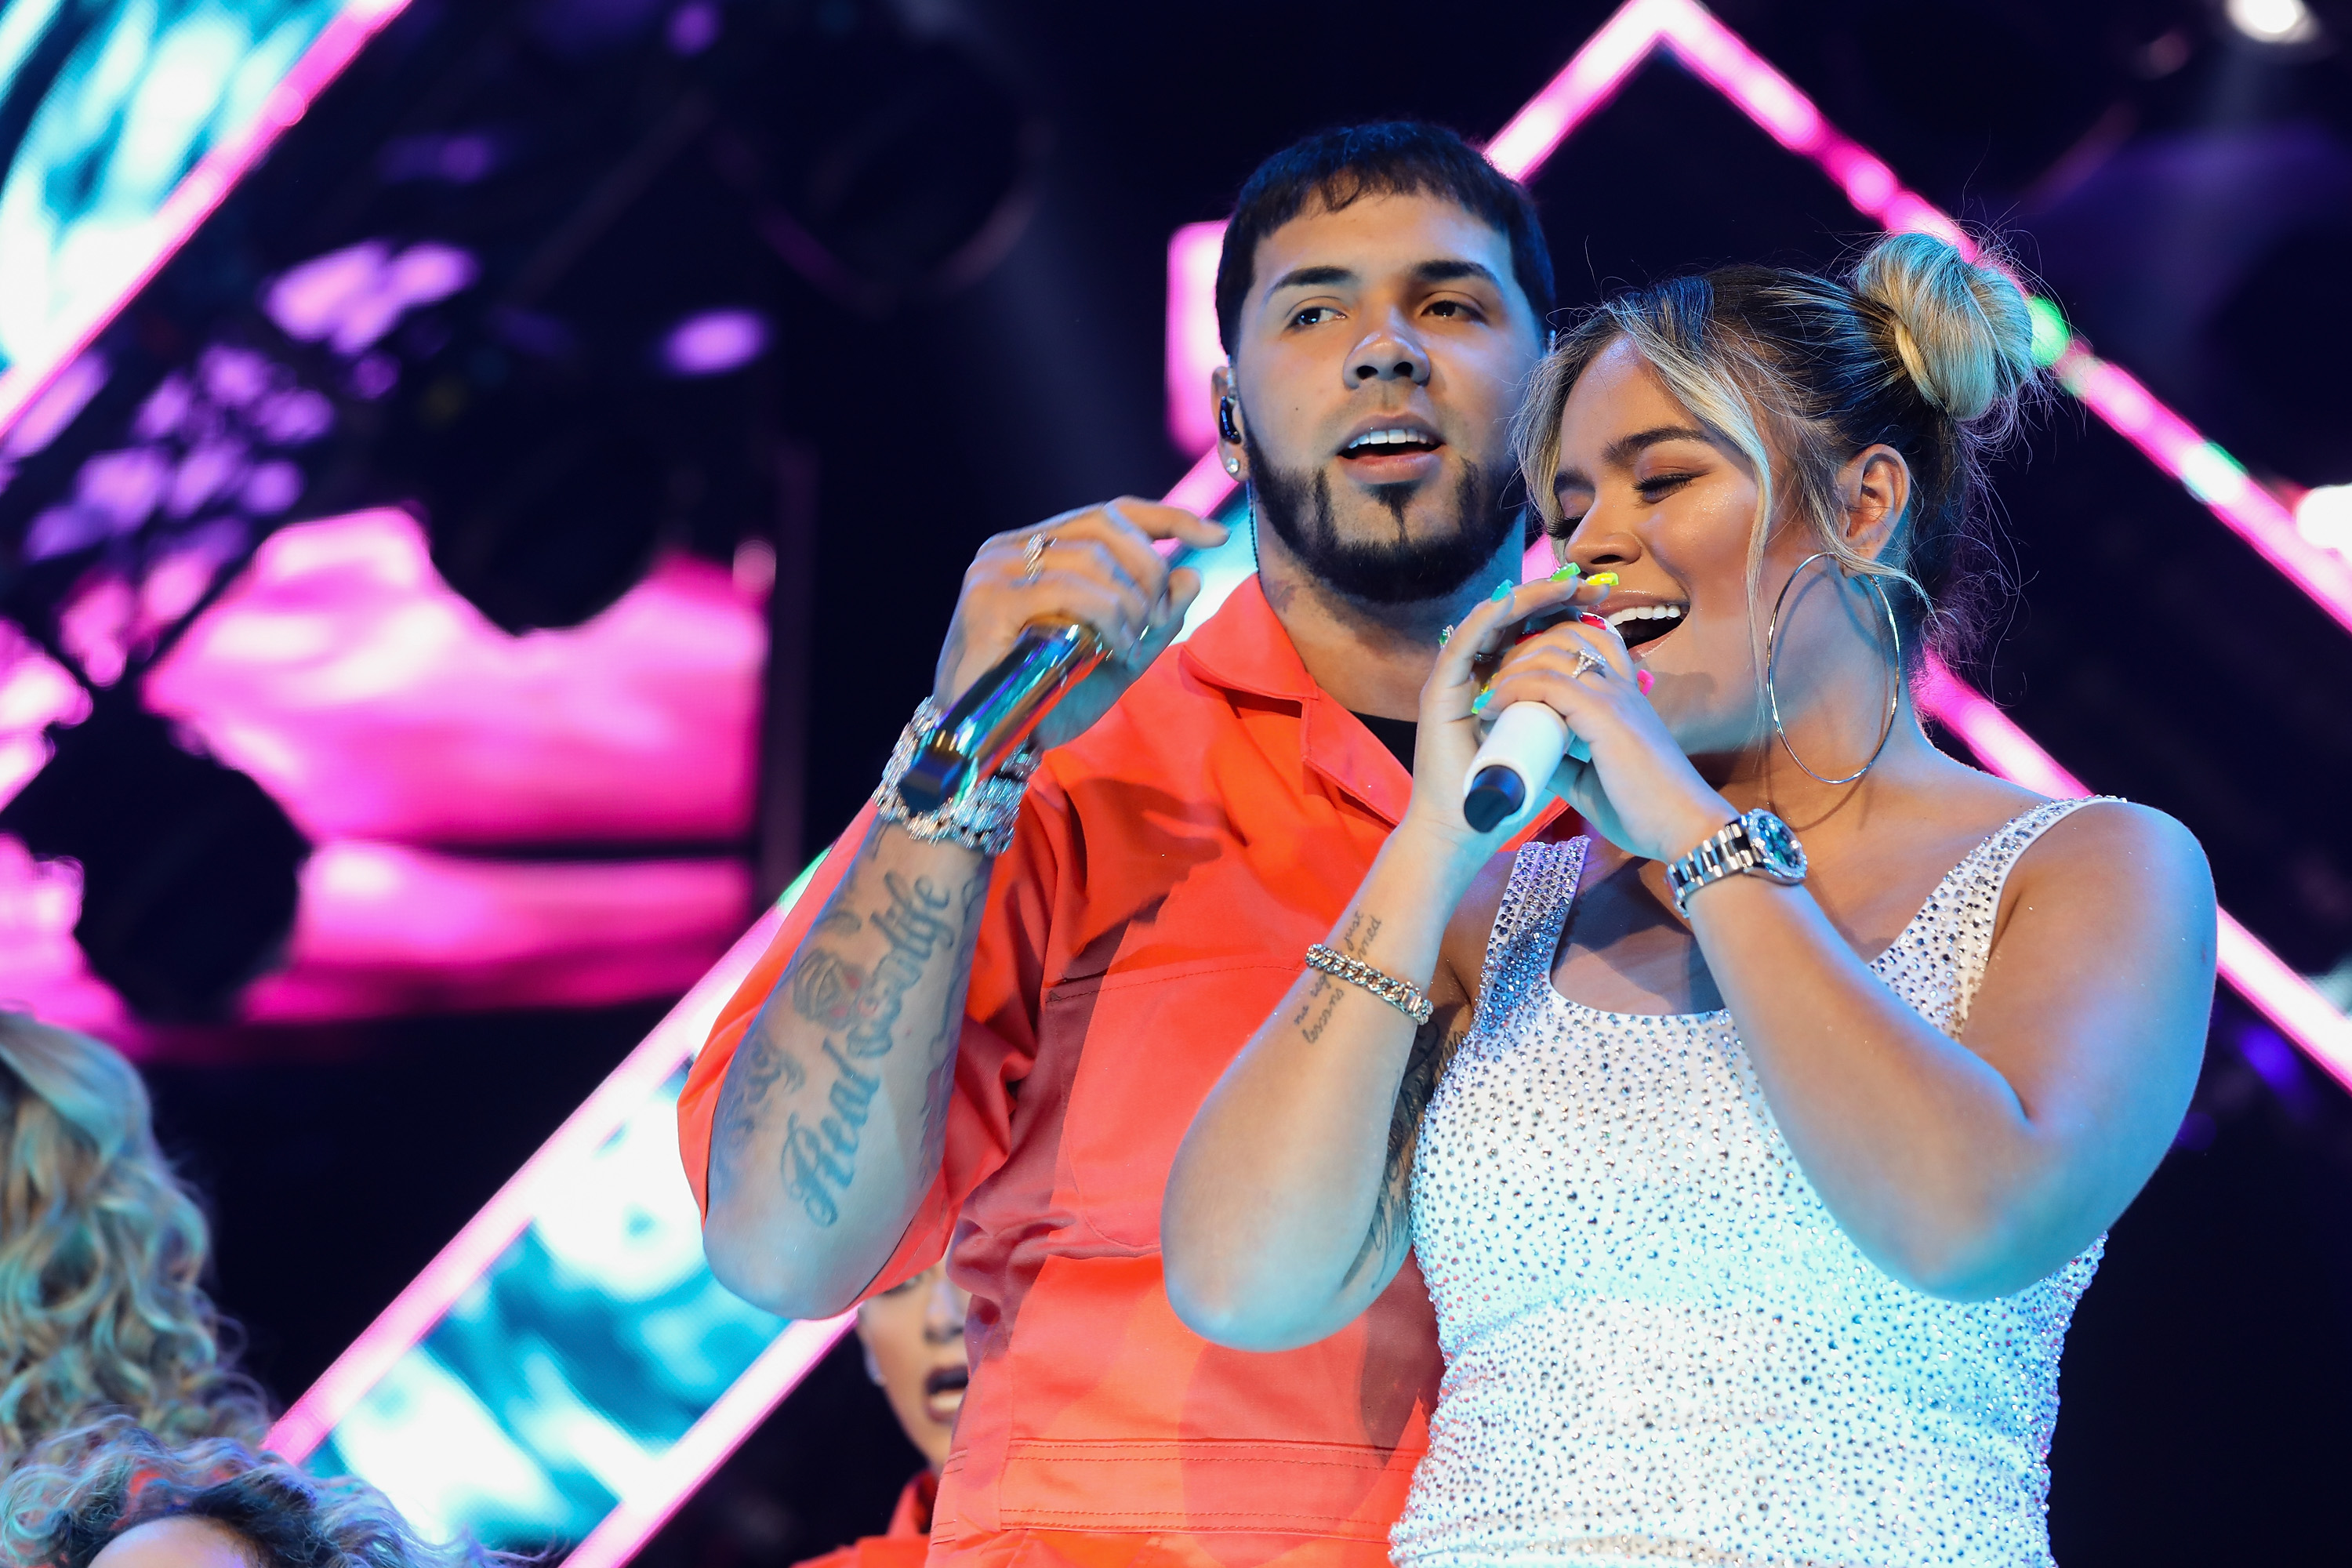 Karol G And Anuel AA Concert In Mexico